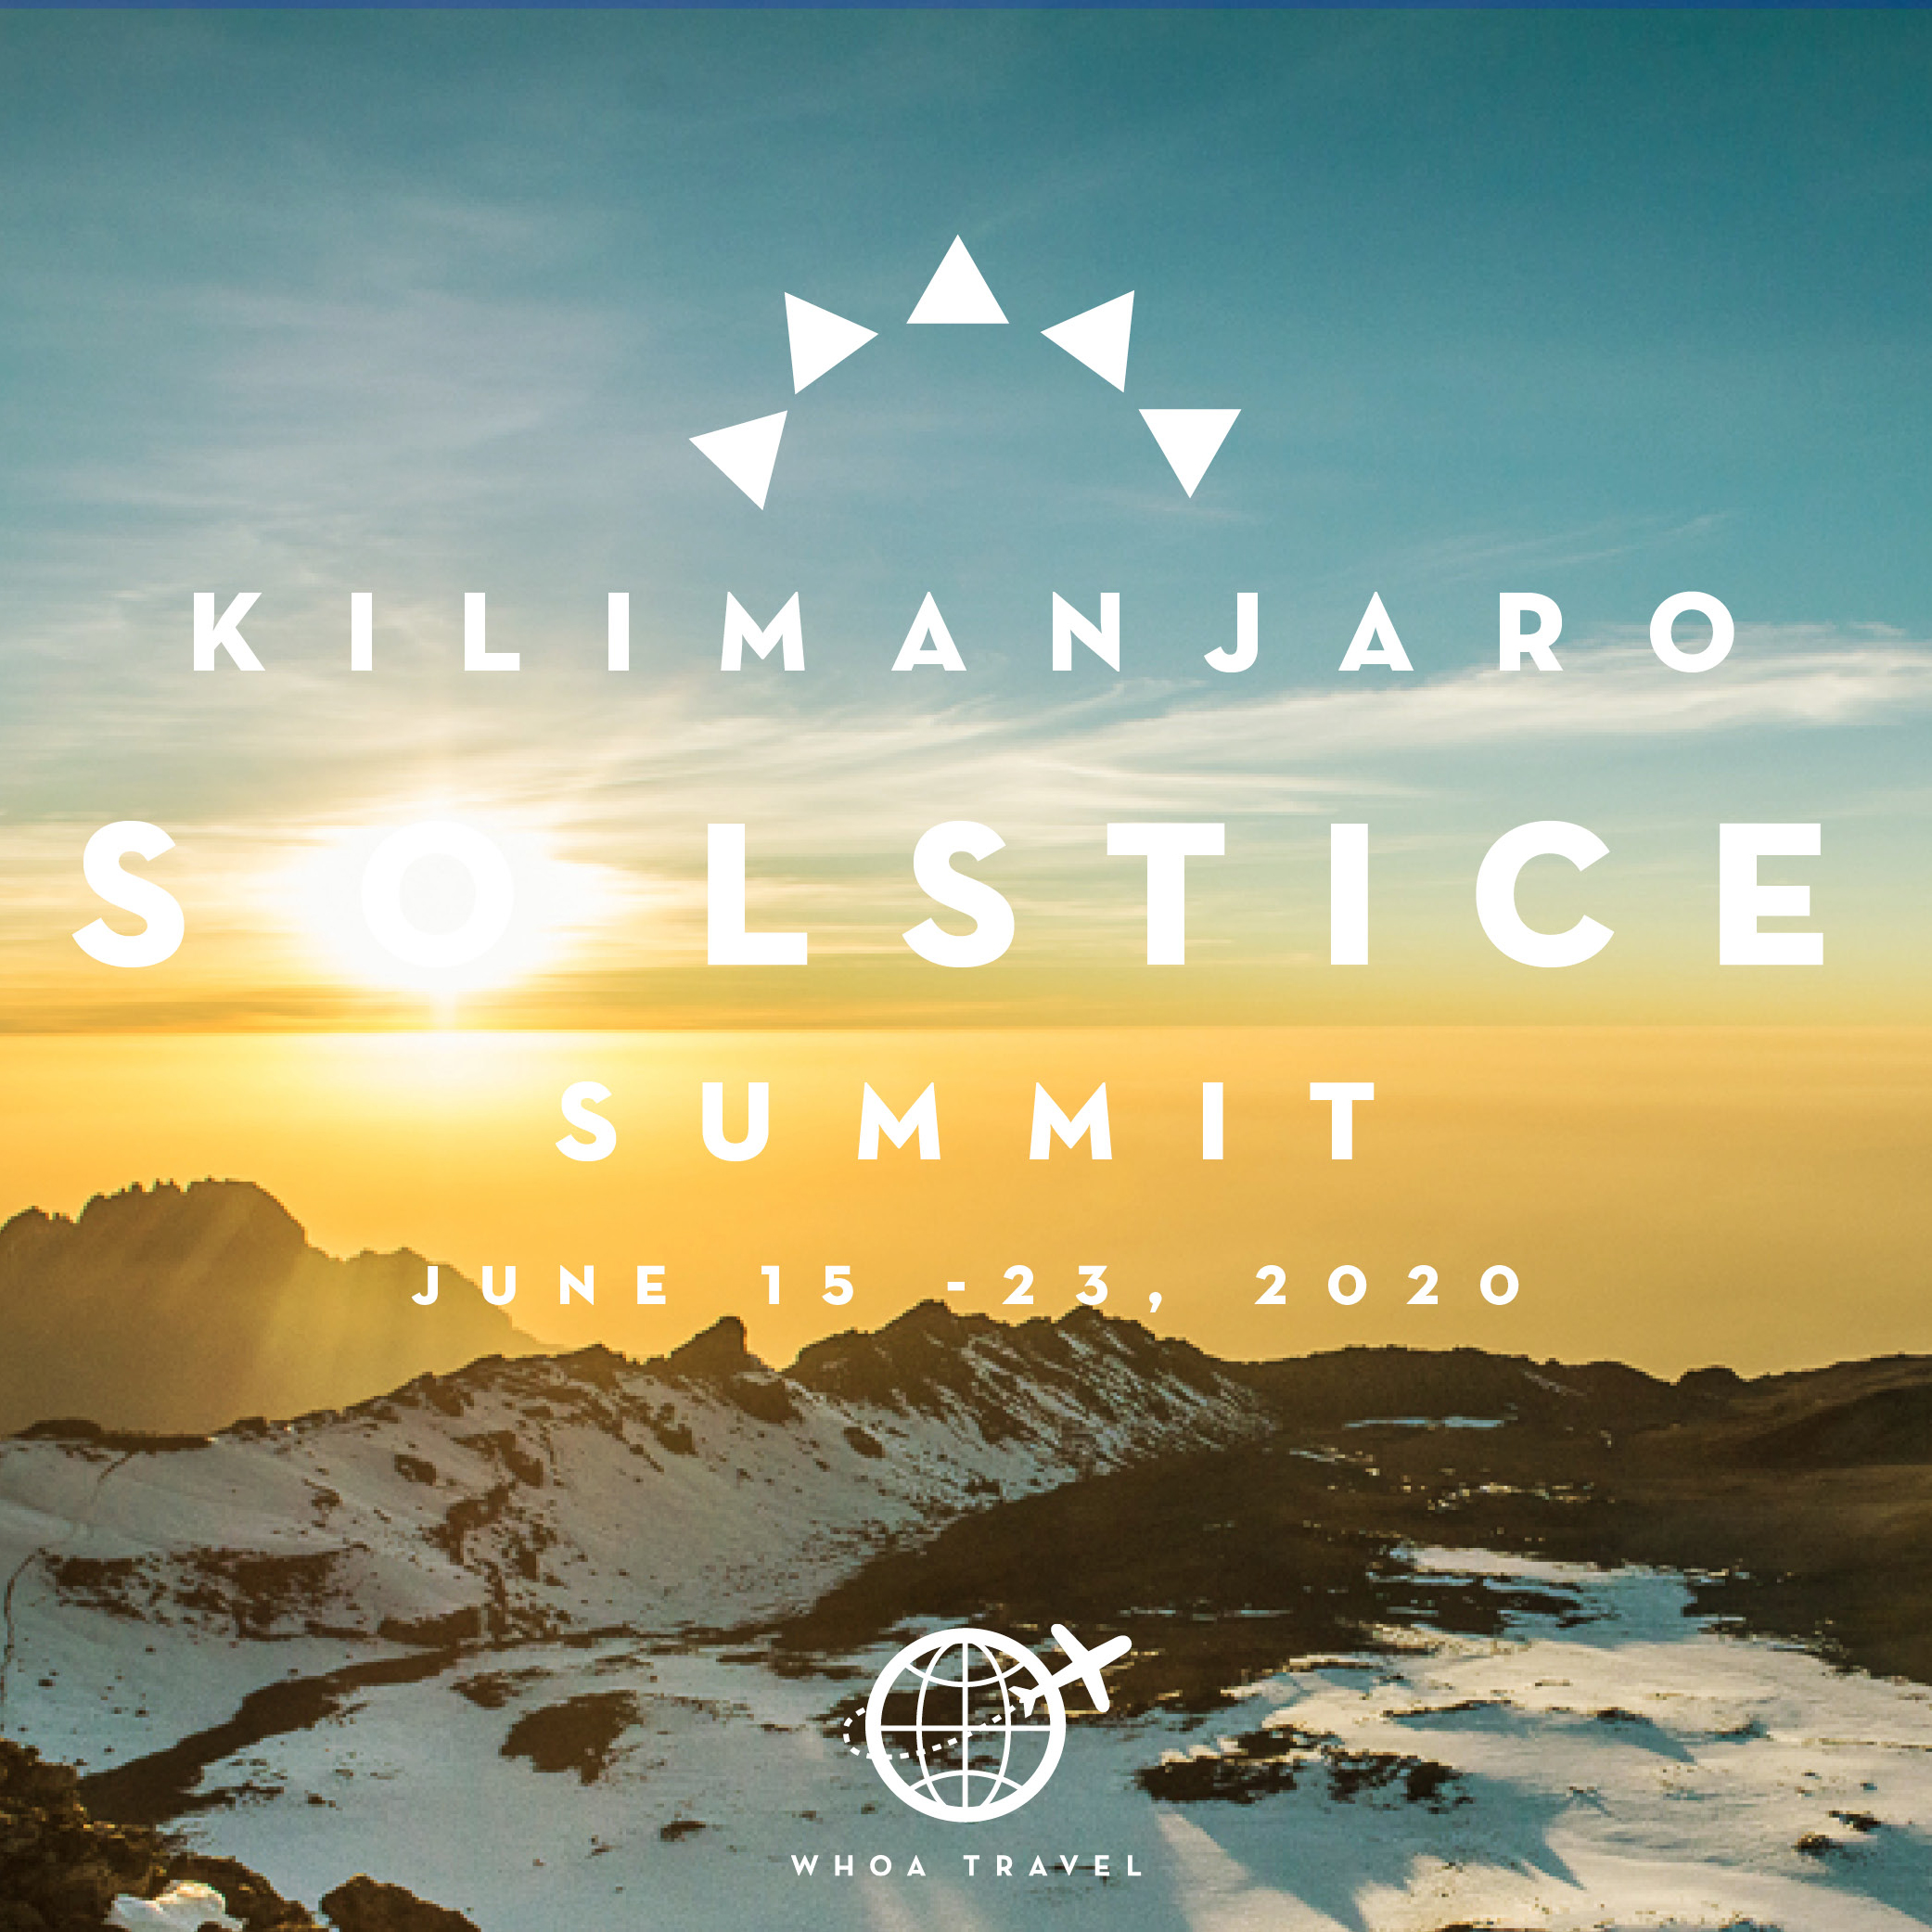 JUNE 15 - 23 - 2020SOLSTICE SUMMITCelebrate new beginnings and all the light in our lives